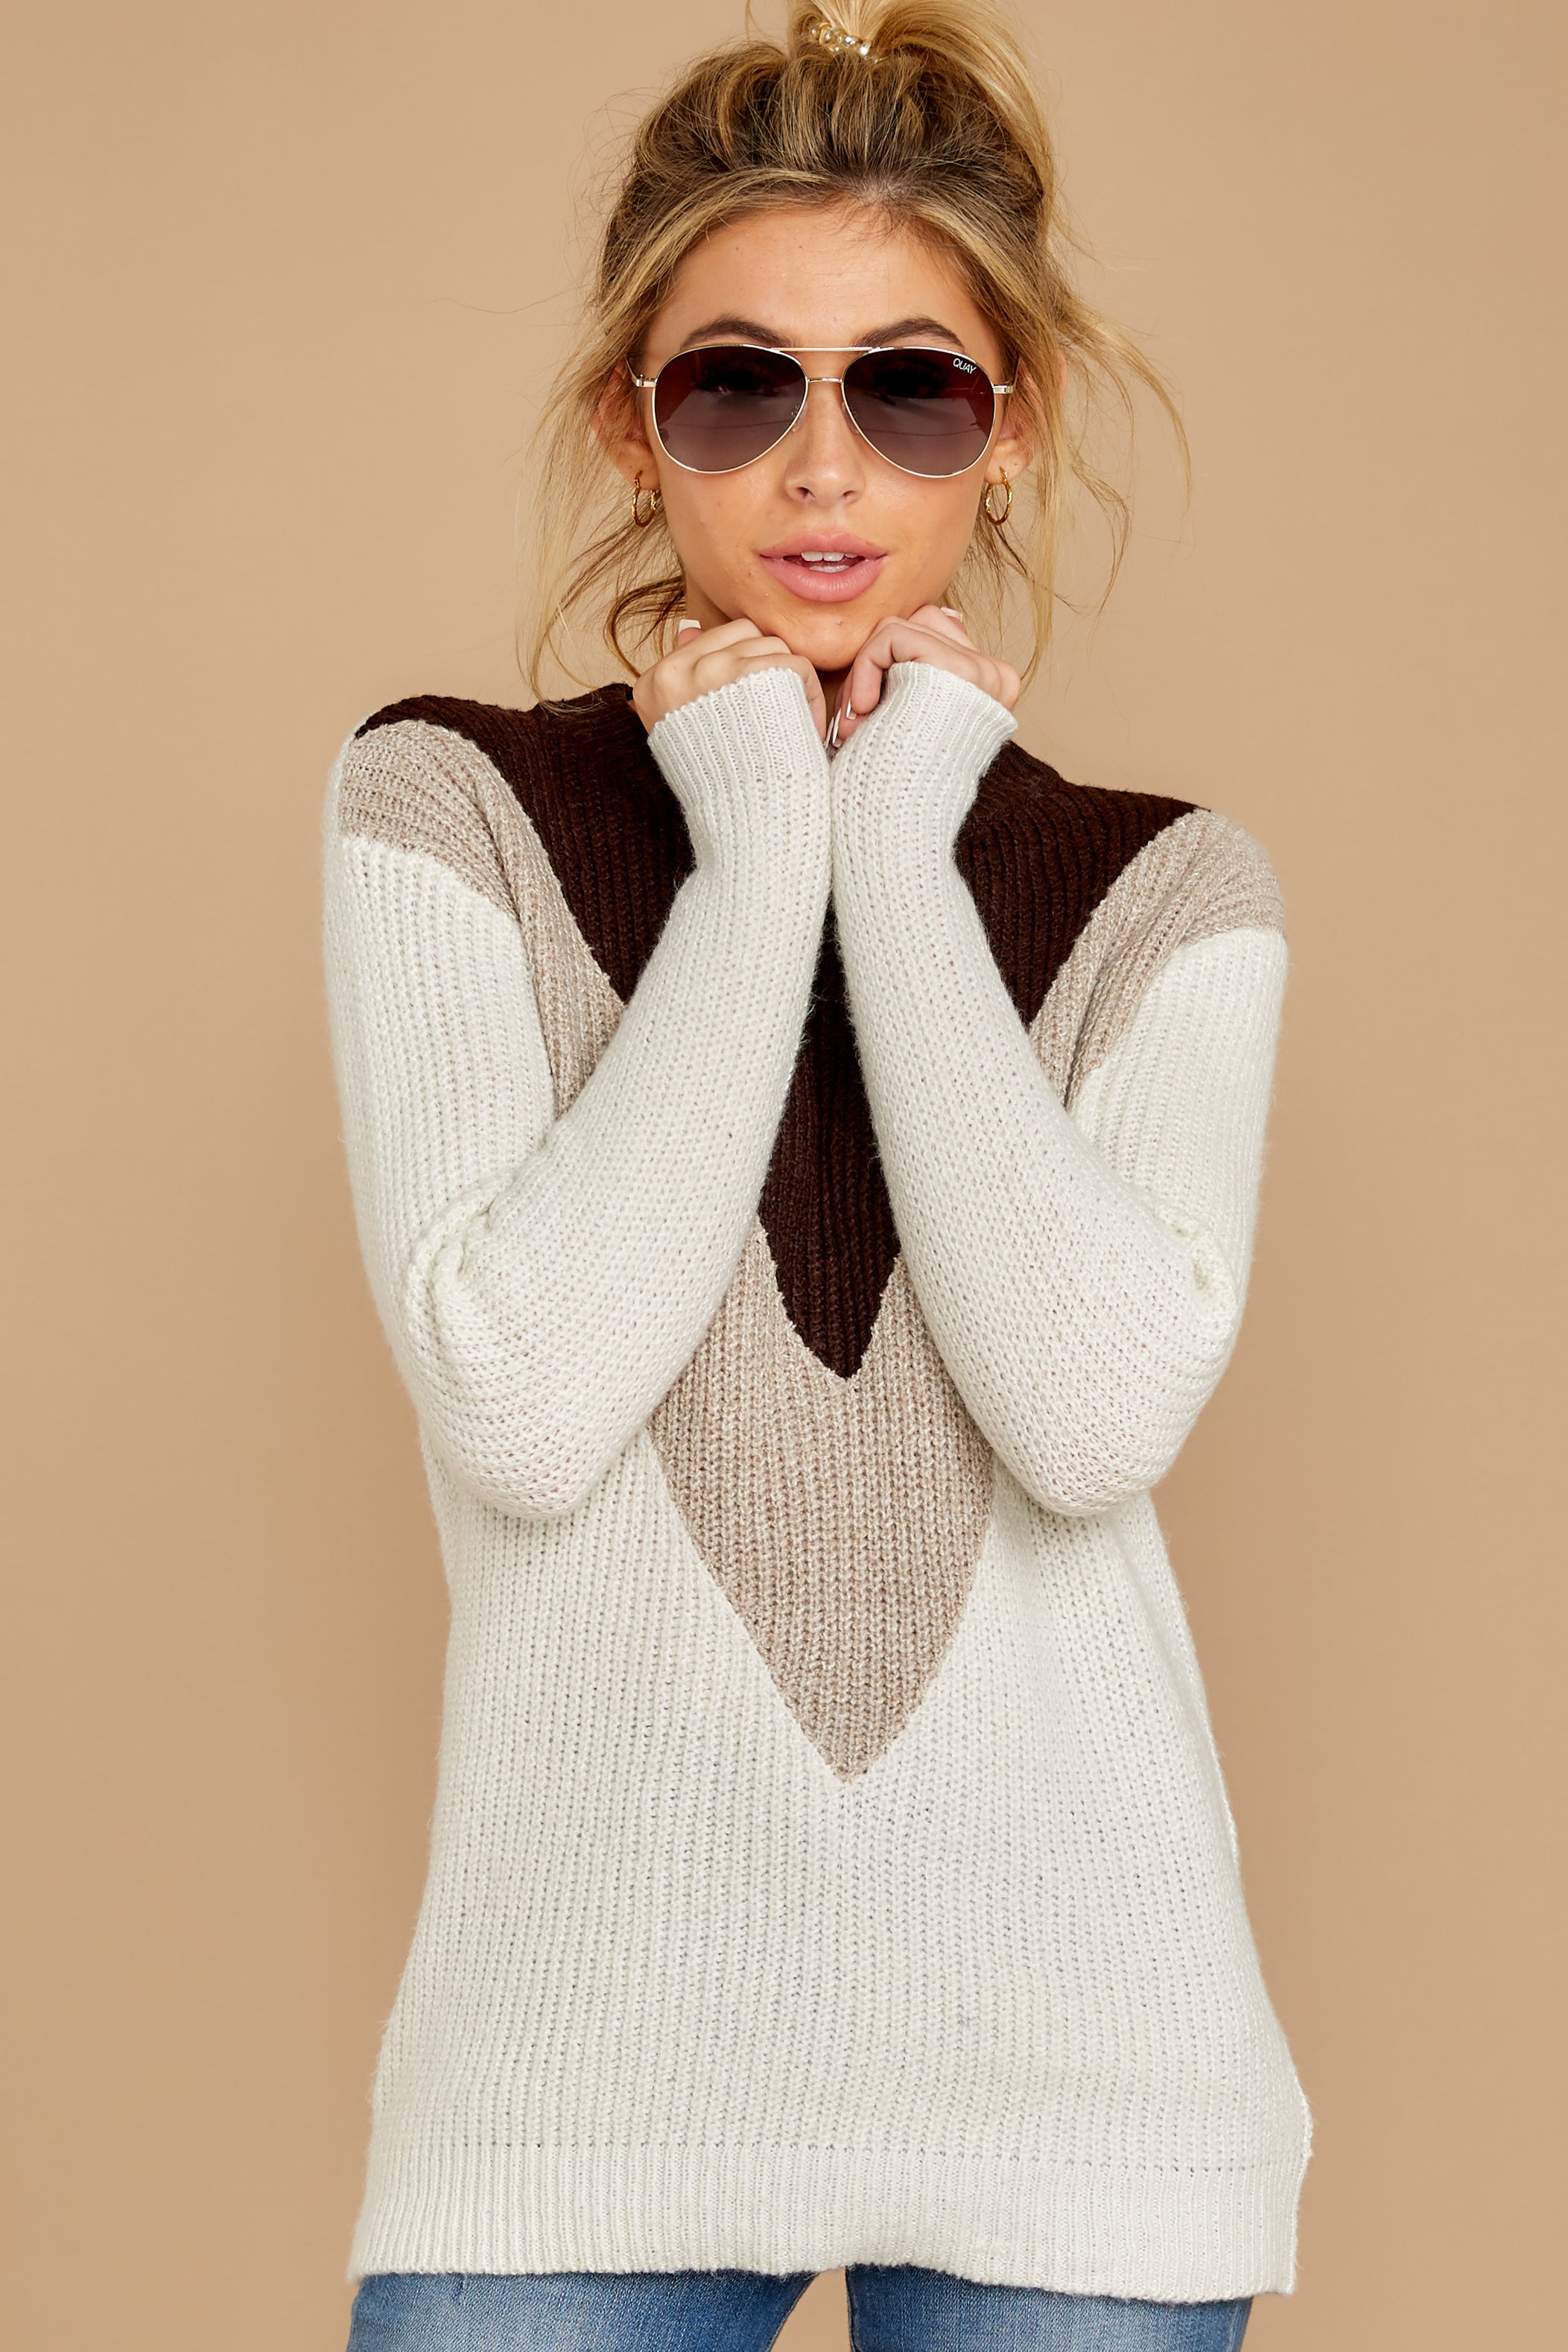 Catching Love Ivory Chevron Sweater